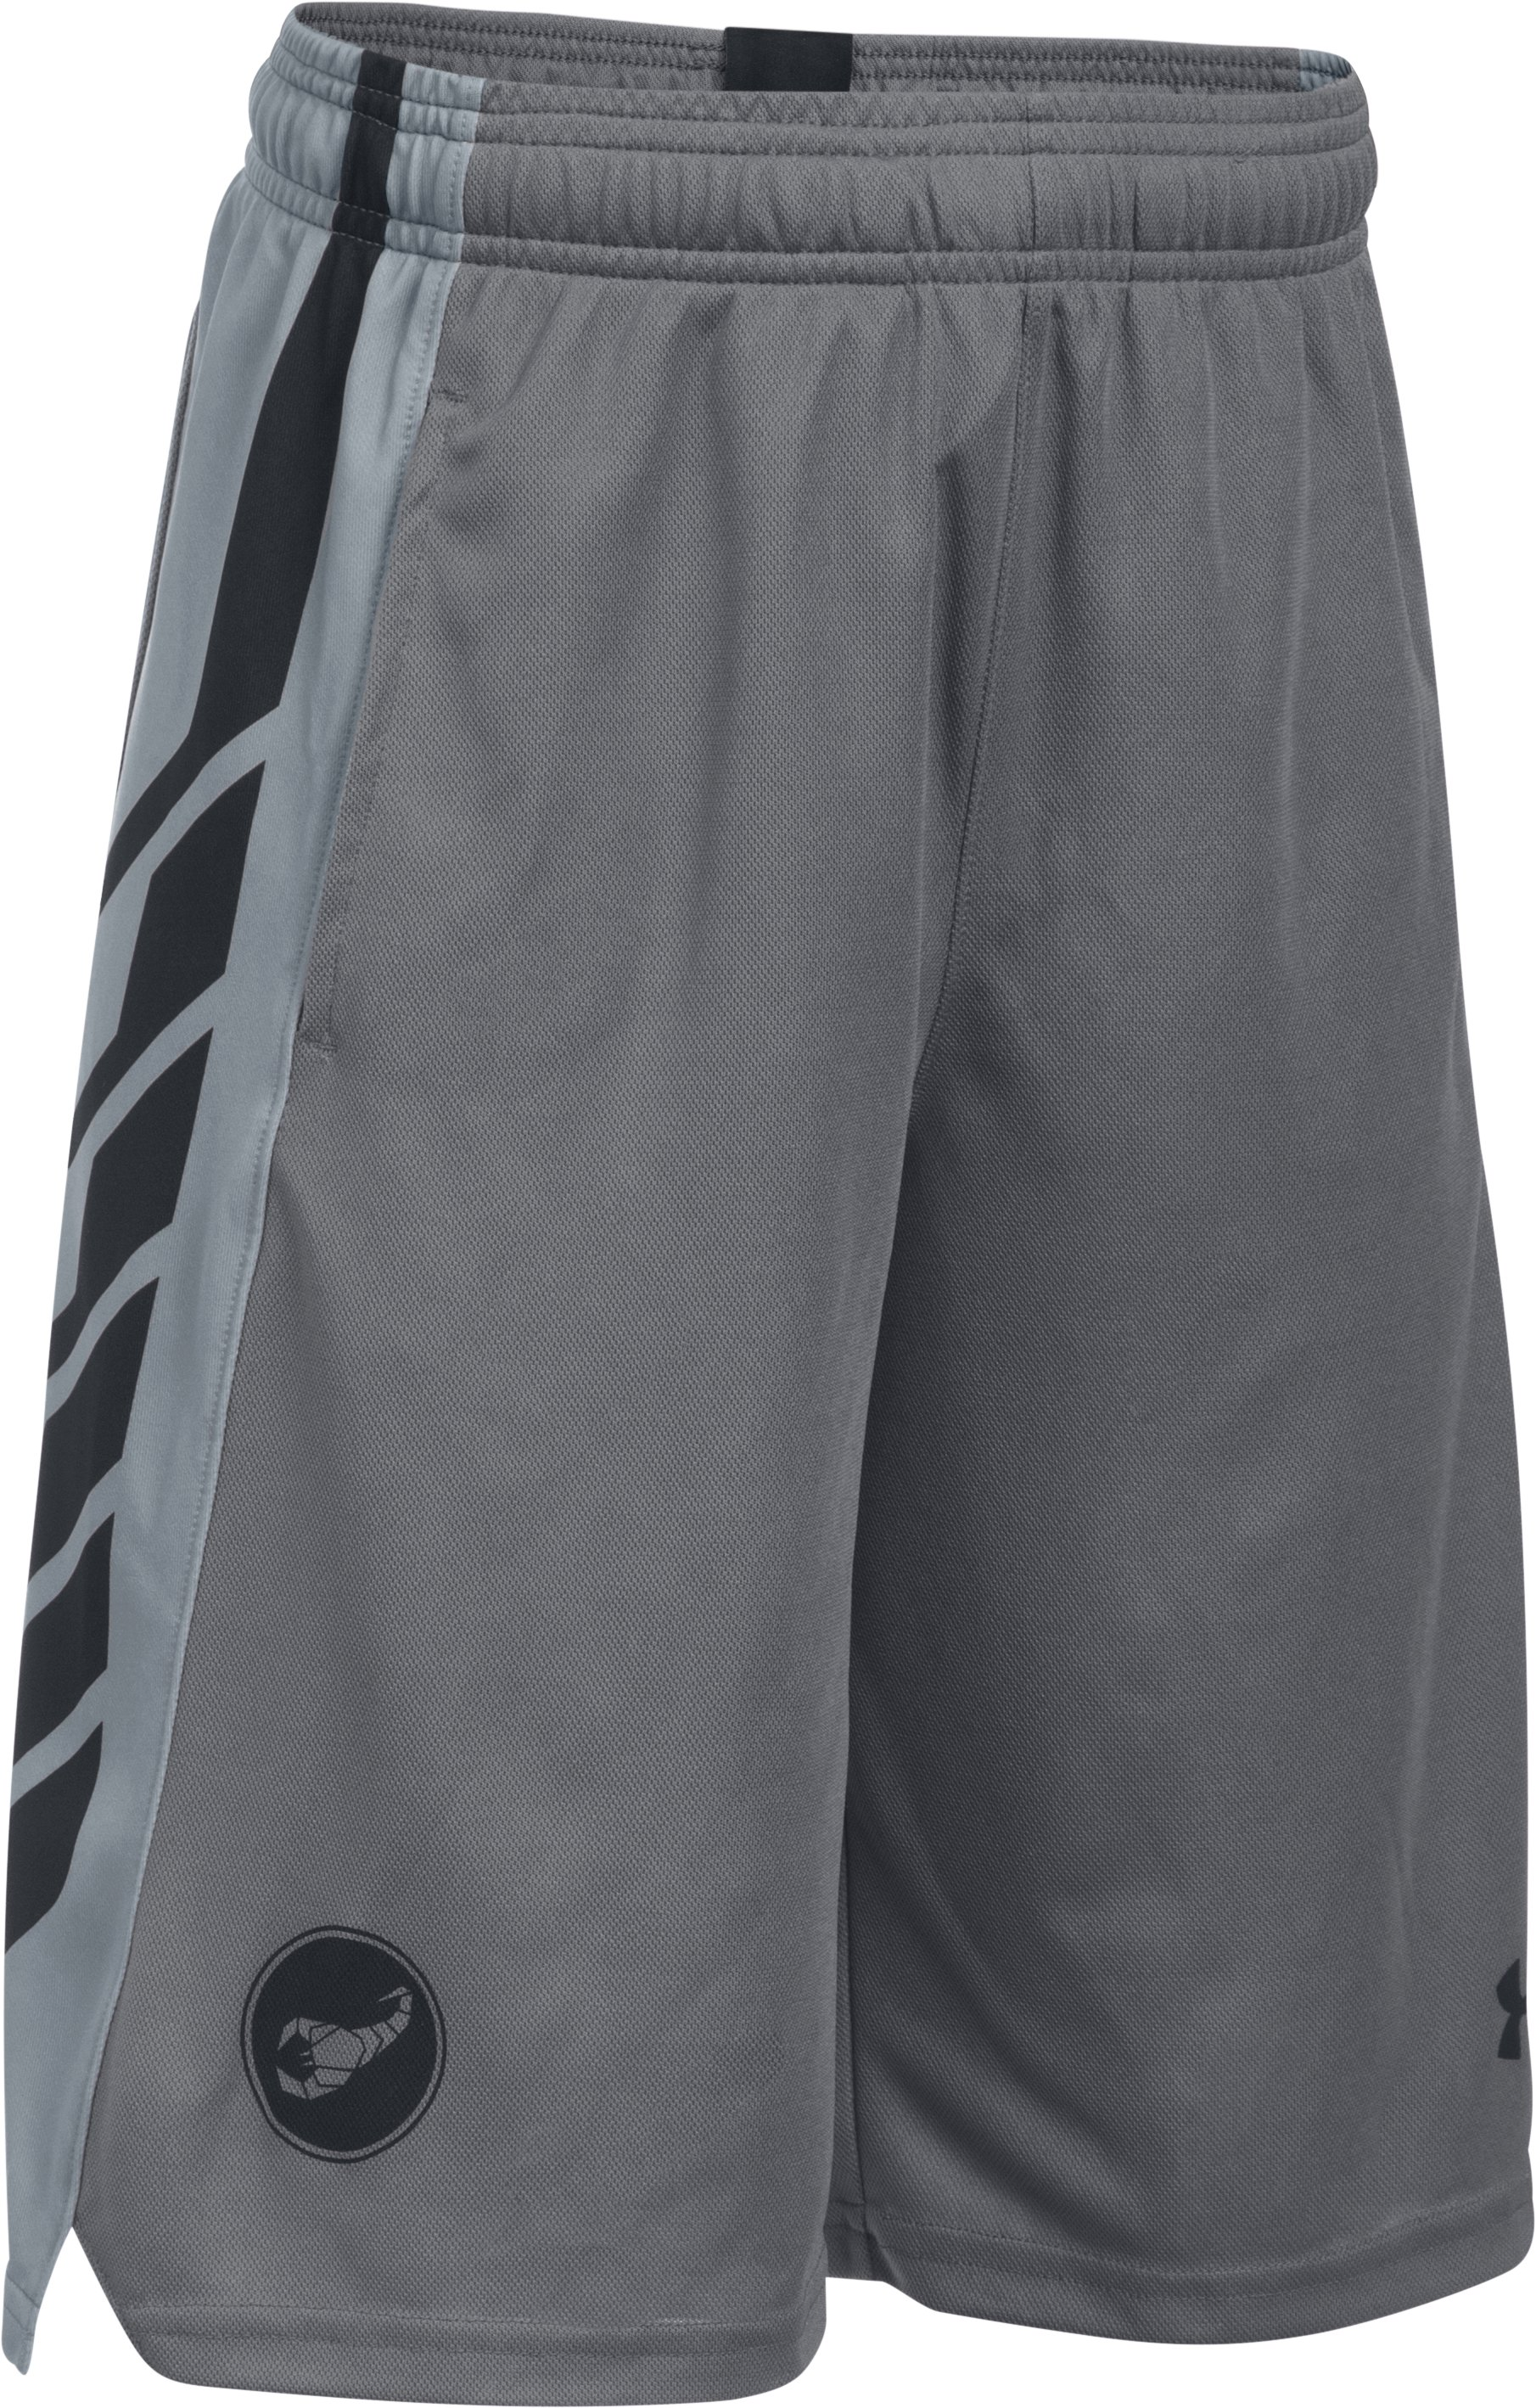 Boys' Kulipari UA Scorpion Shorts, Graphite